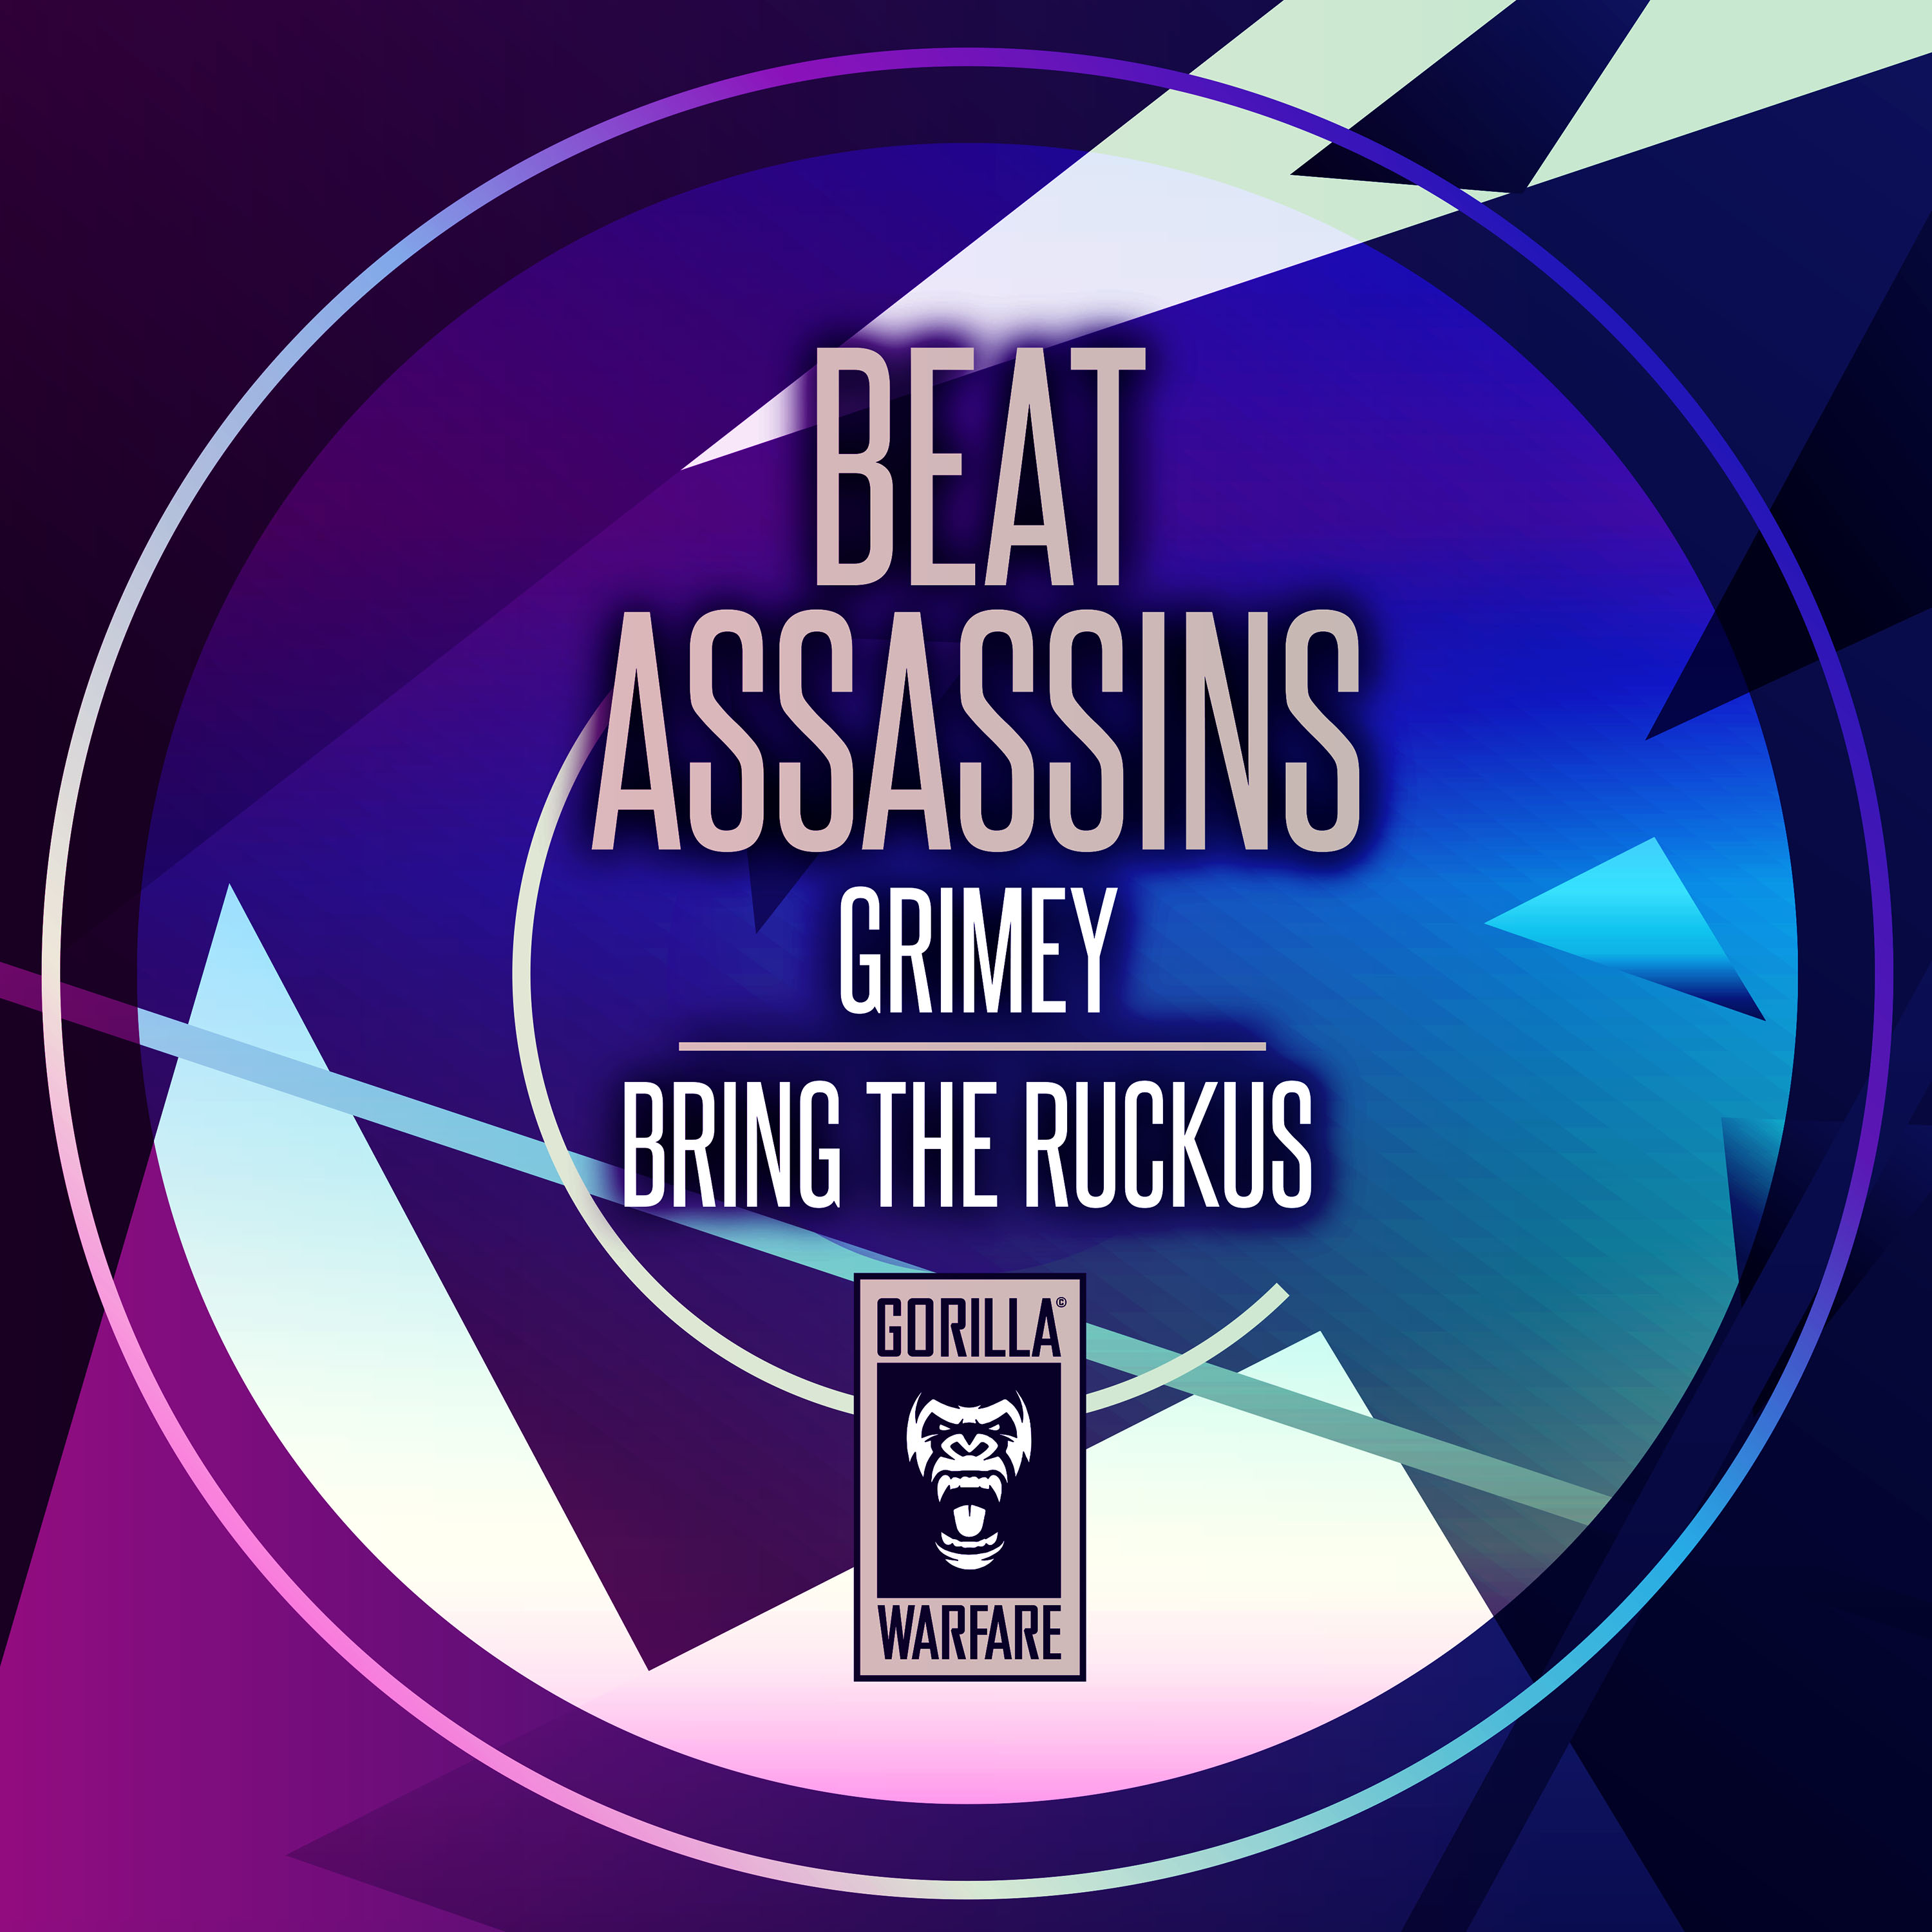 1000x1000_Rat48 - Beat Assassins